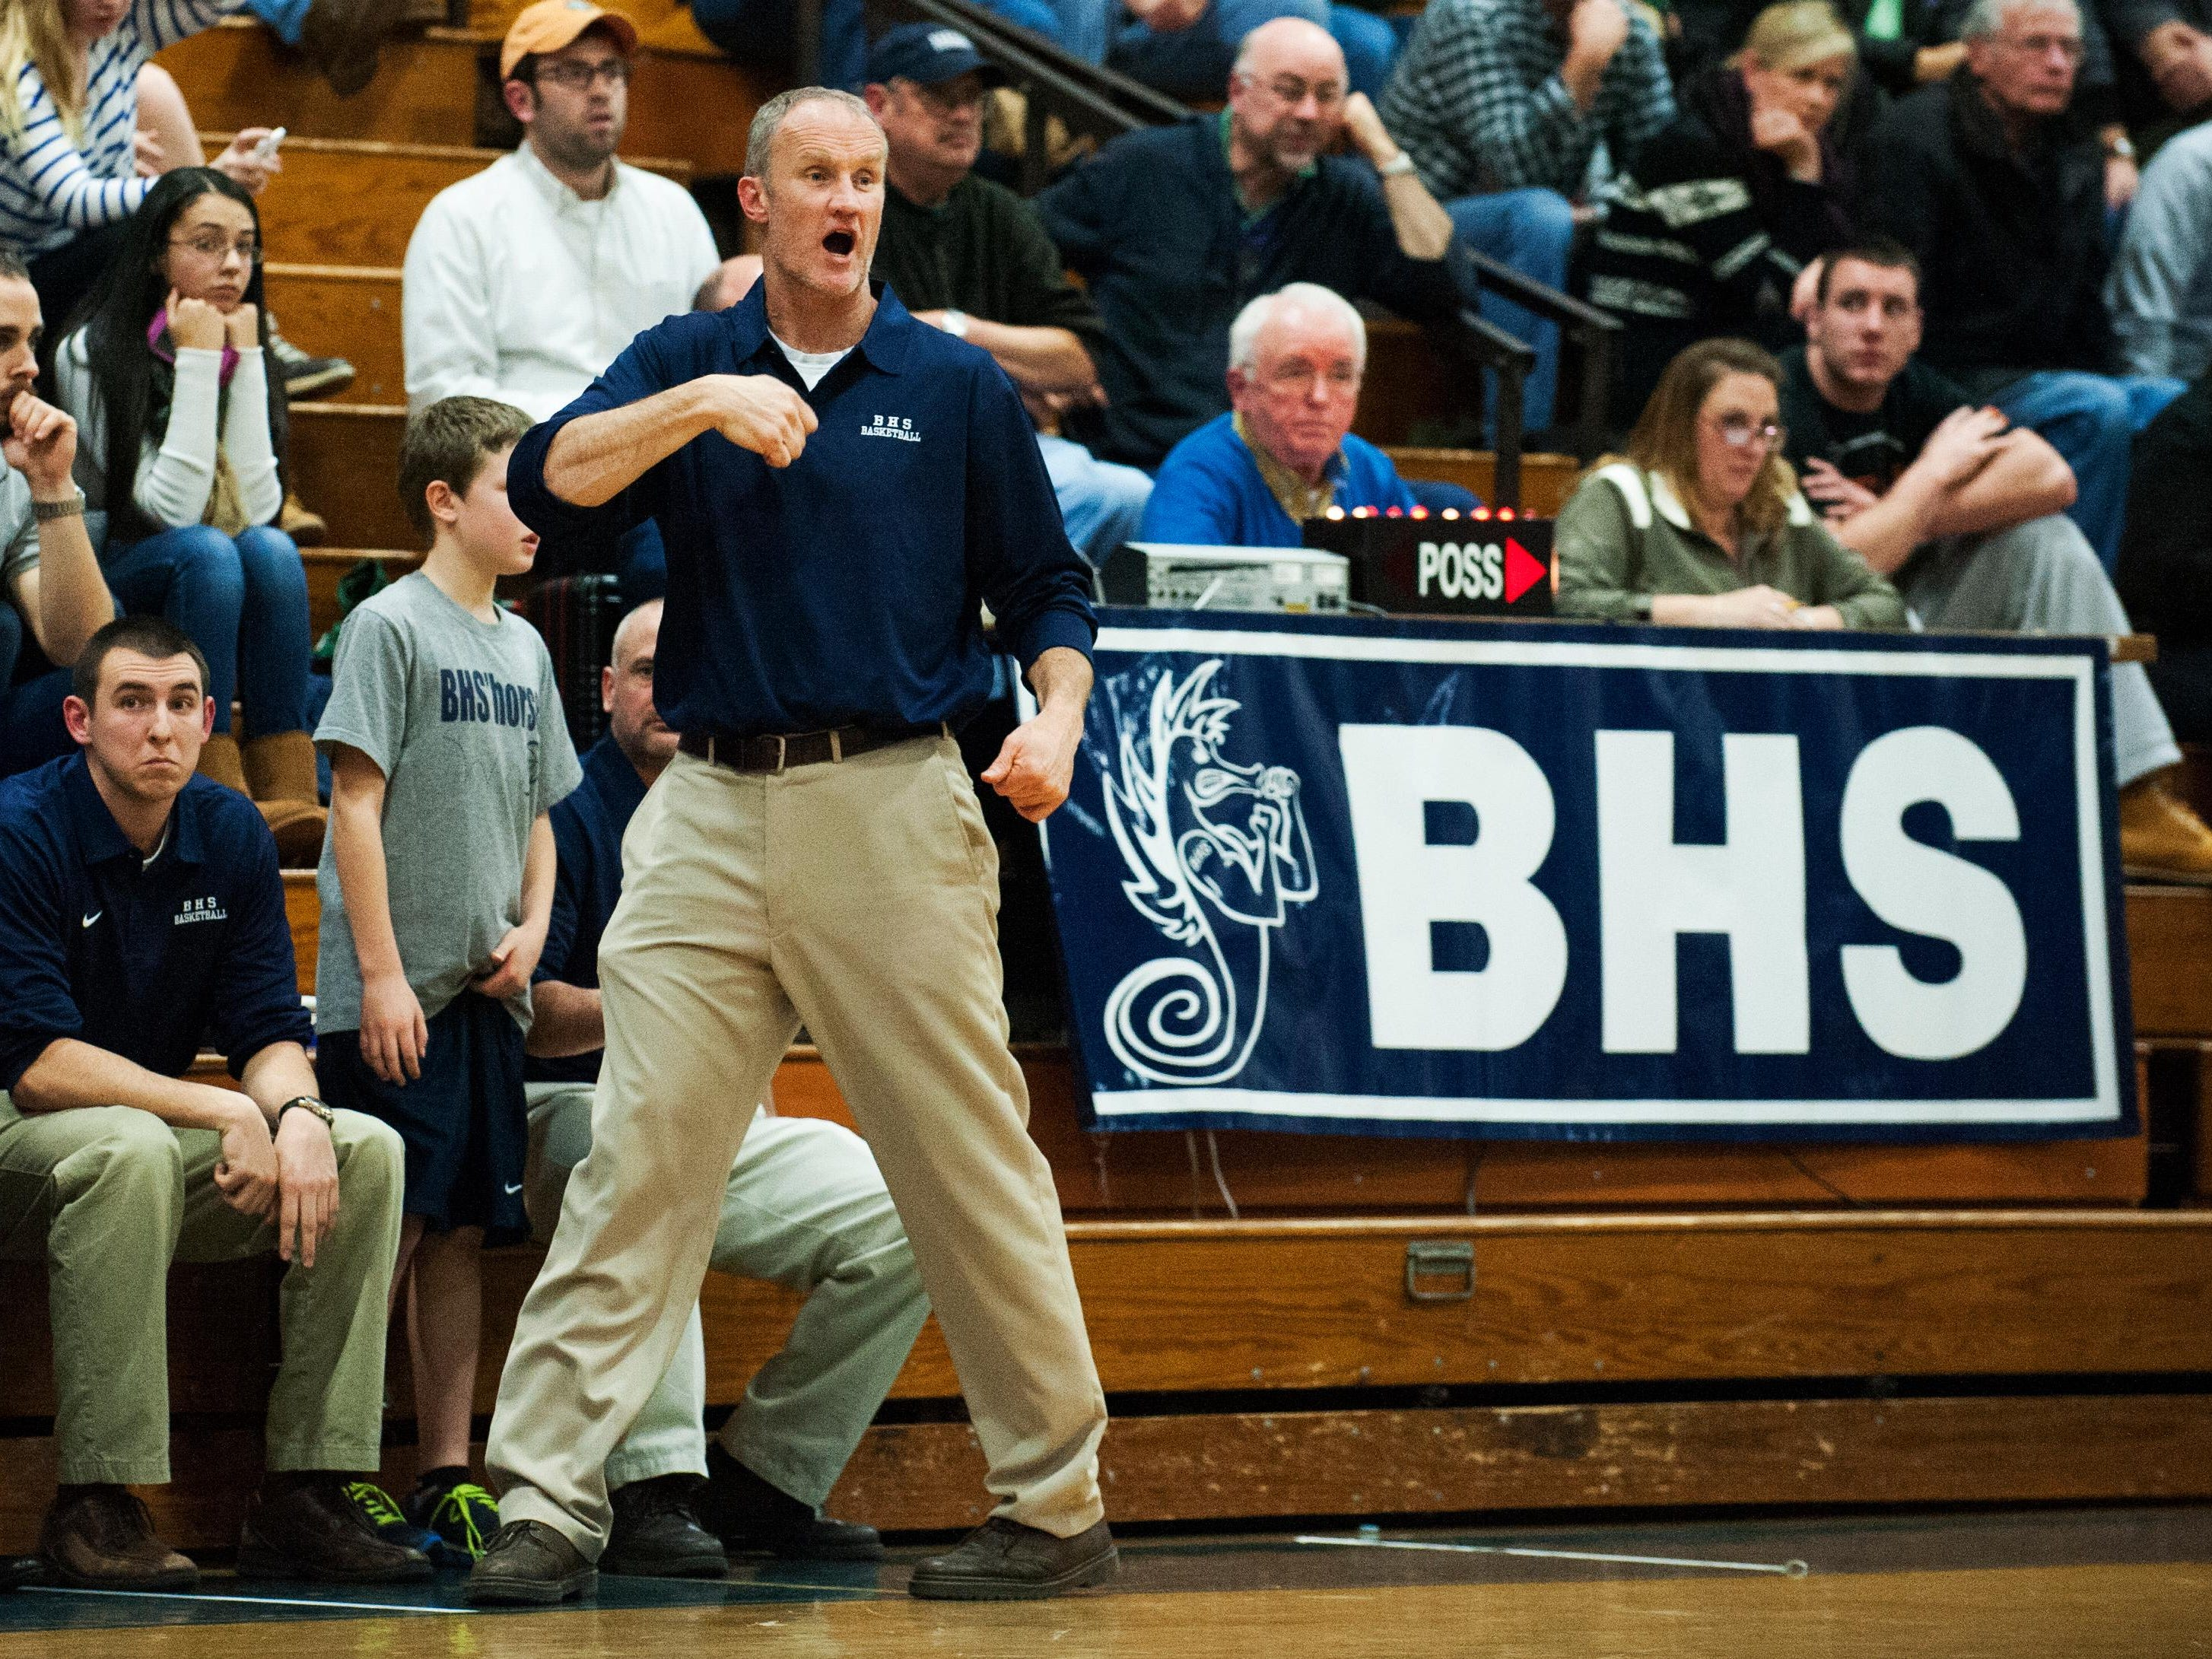 Burlington head coach Matt Johnson talks to his tema on the court during the boys basketball game between the Rice Green Knights and the Burlington Seahorses at BHS high school on Tuesday night December 9, 2014 in Burlington, Vermont. (BRIAN JENKINS, for the Free Press)